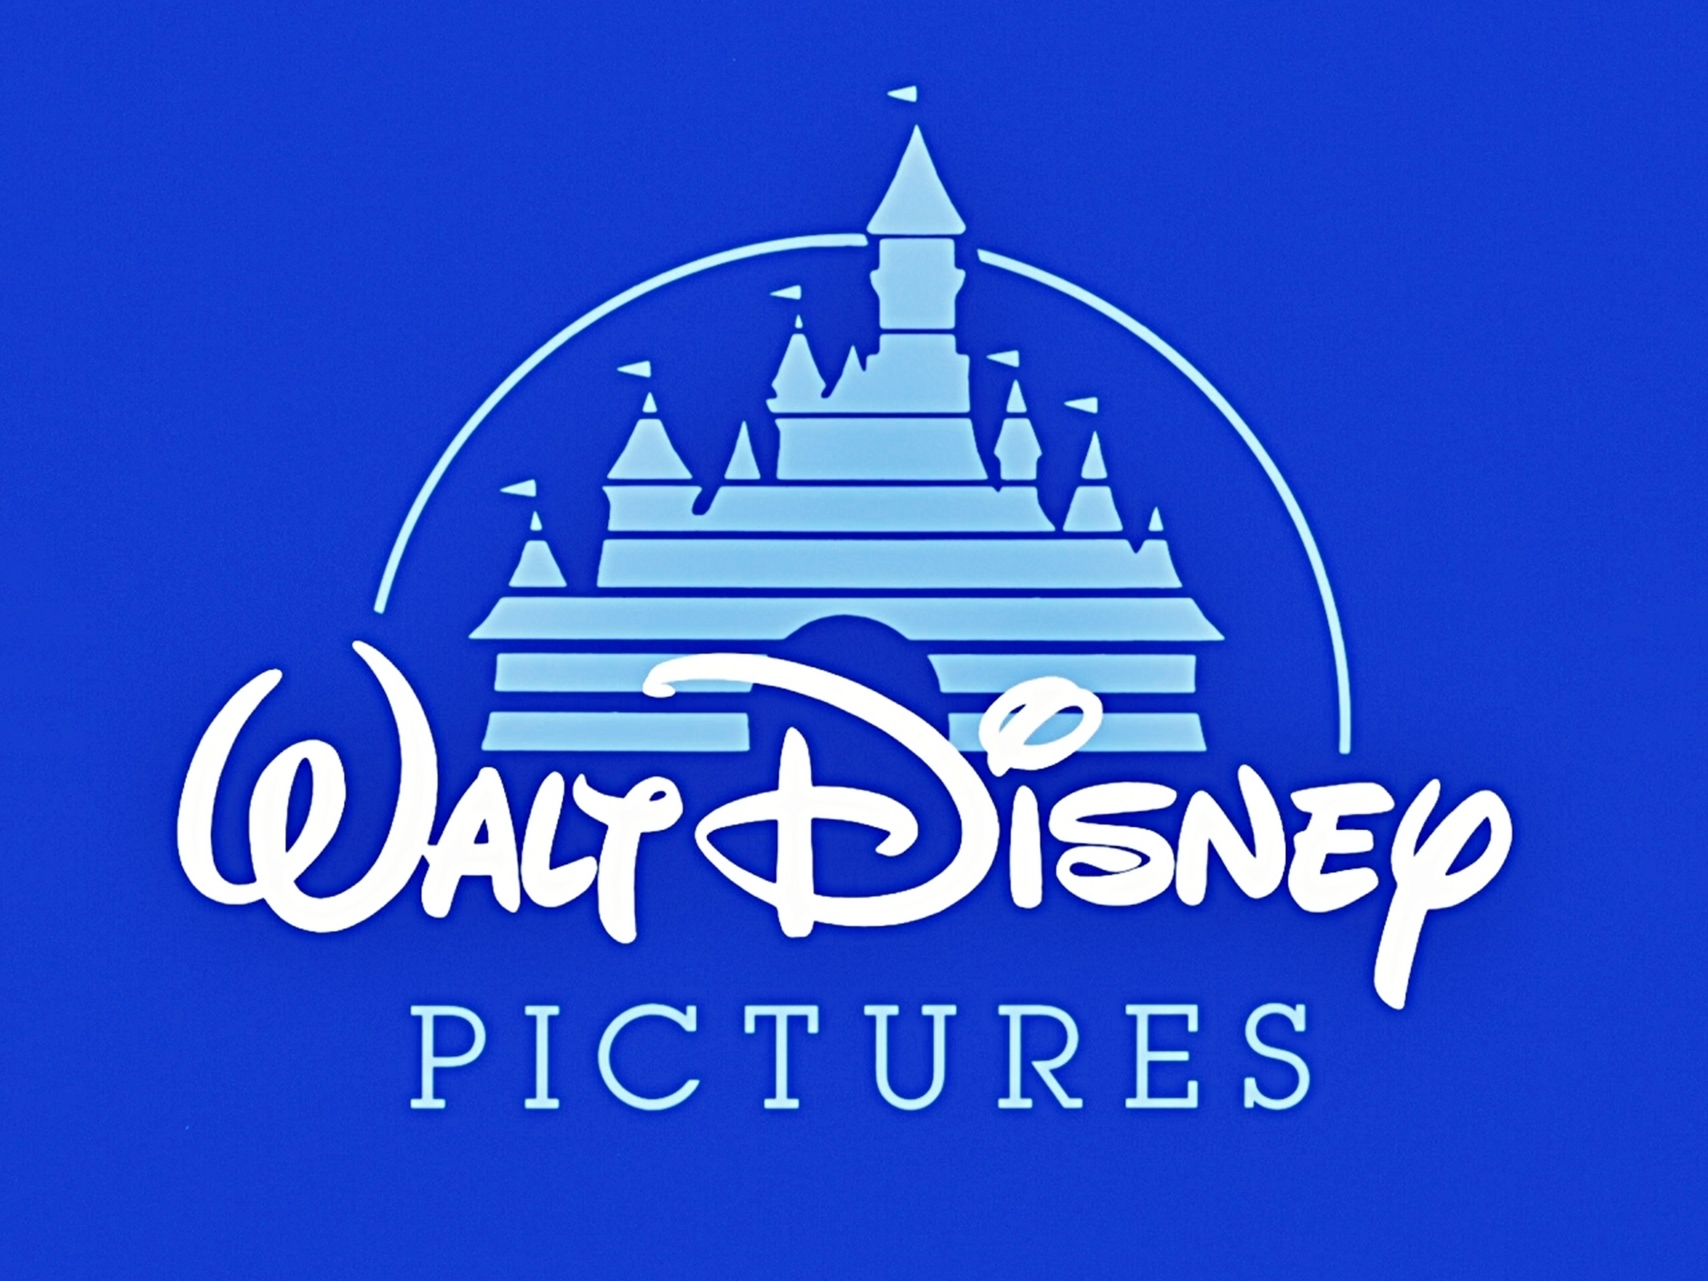 Walt disney brand Wallpaper